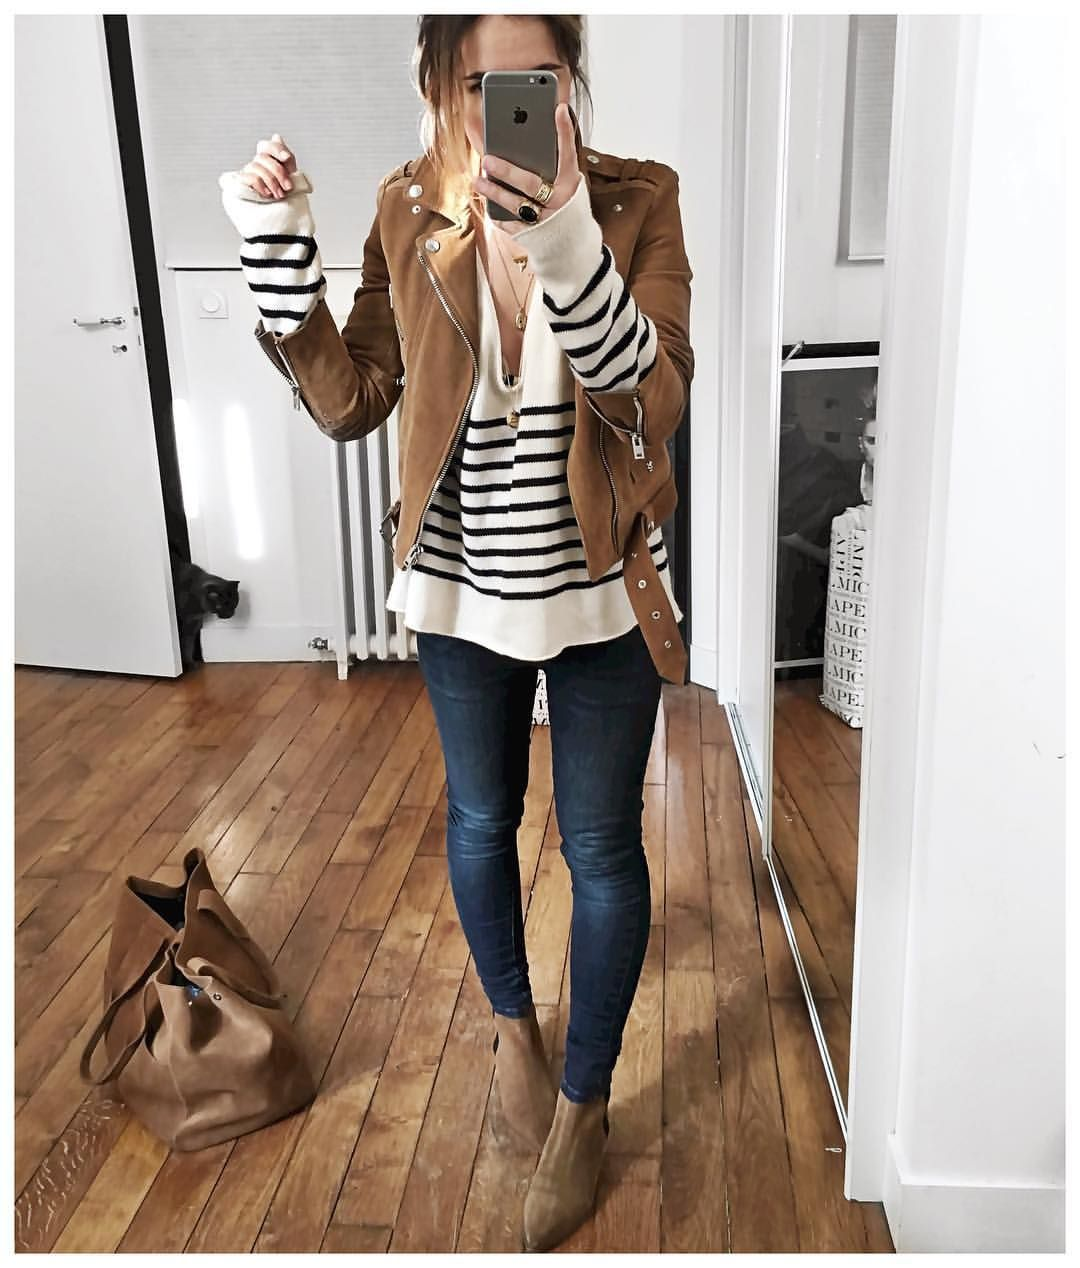 Skinnies, stripes, booties and all the browns